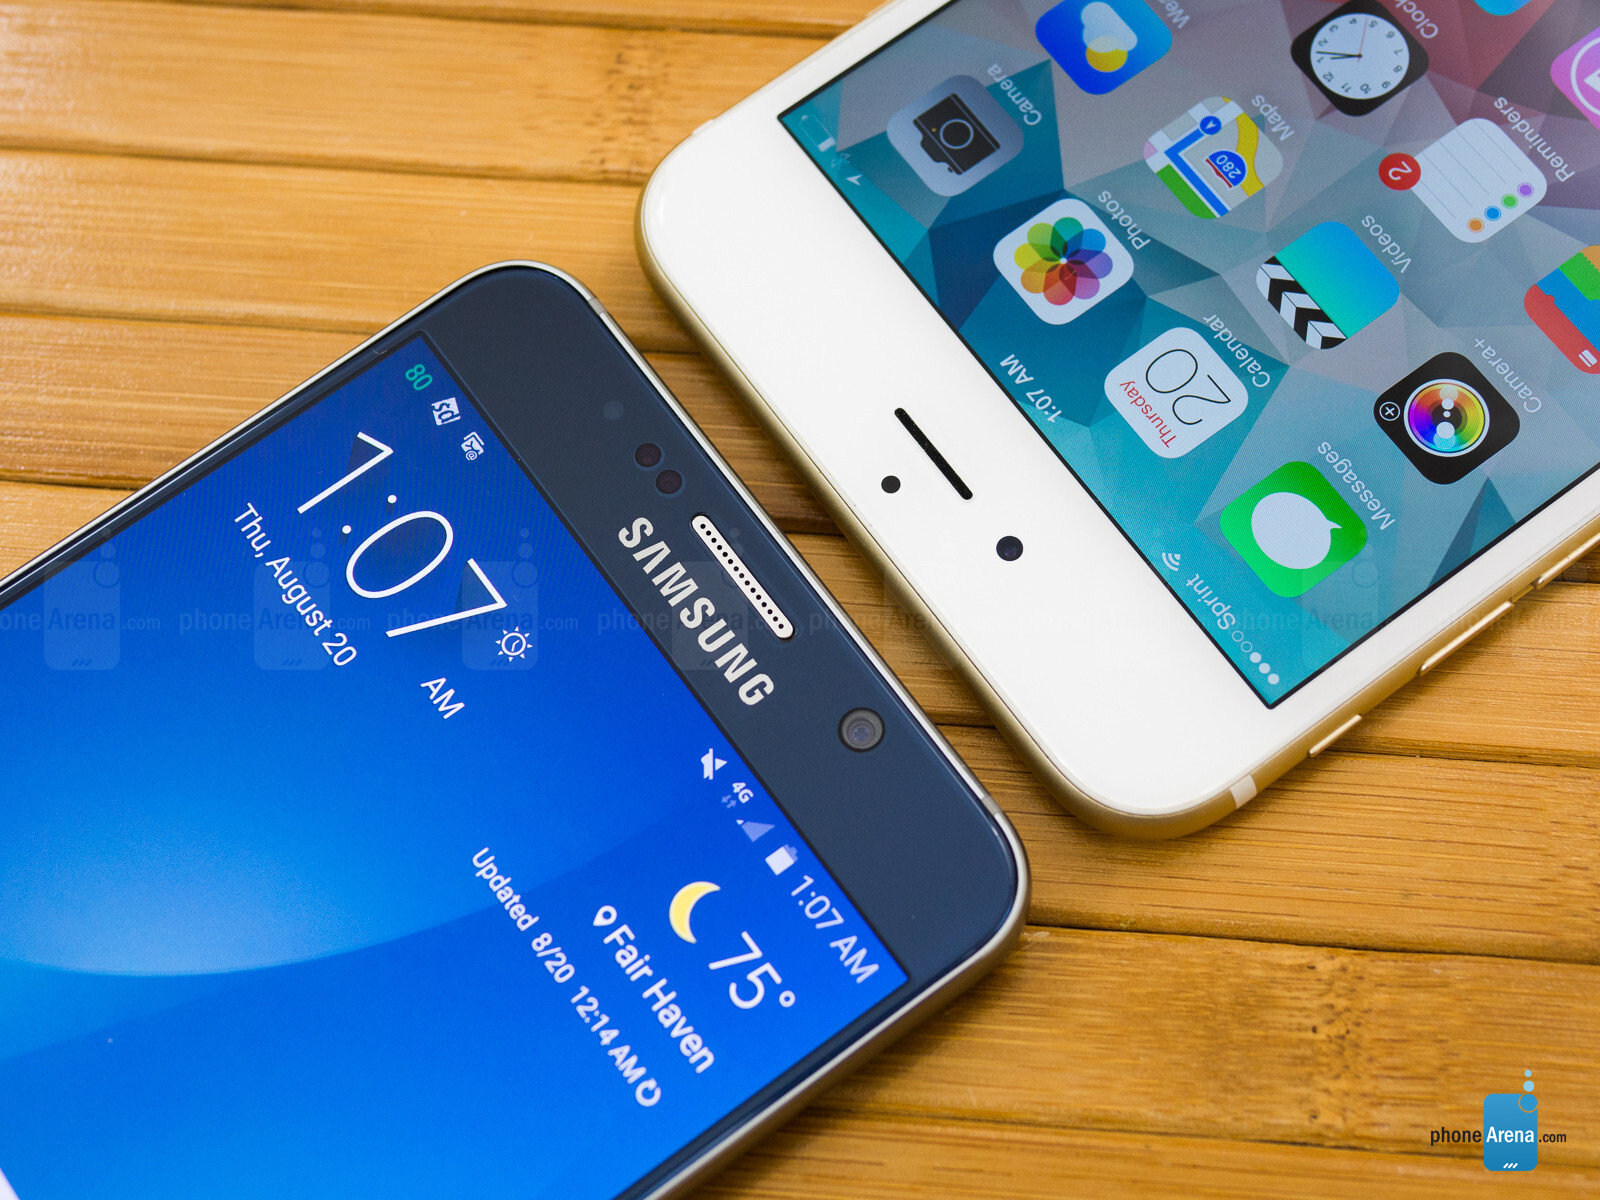 Galaxy Note 5 Wallpapers Hd: Samsung Galaxy Note5 Vs Apple IPhone 6 Plus